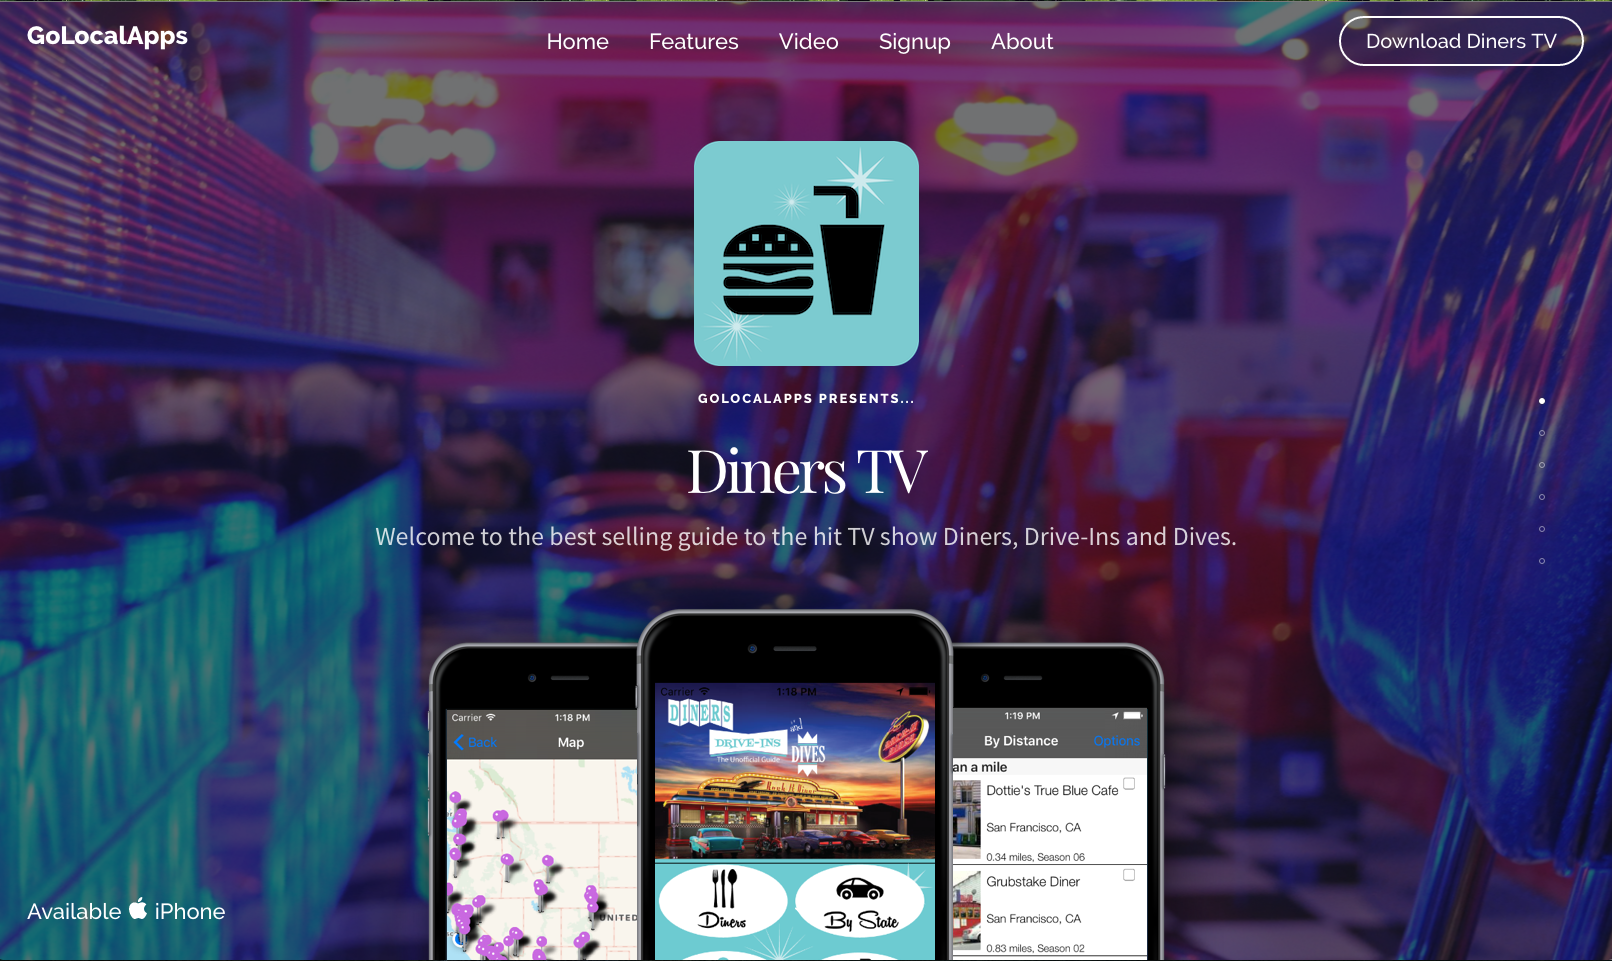 Diners TV